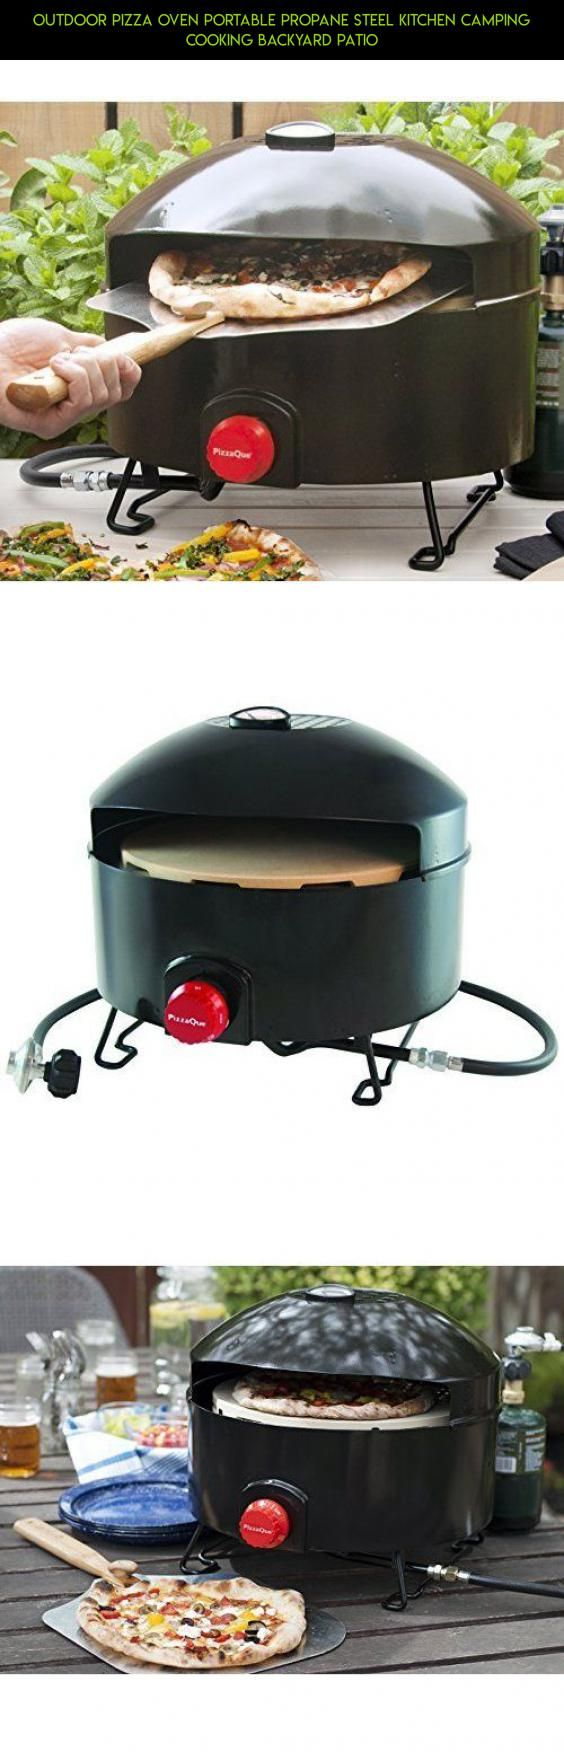 Outdoor Pizza Oven Portable Propane Steel Kitchen Camping Cooking Backyard Patio #technology #products #kitchen #tech #cooking #plans #gadgets #shopping #fpv #parts #kit #outdoor #drone #racing #camera